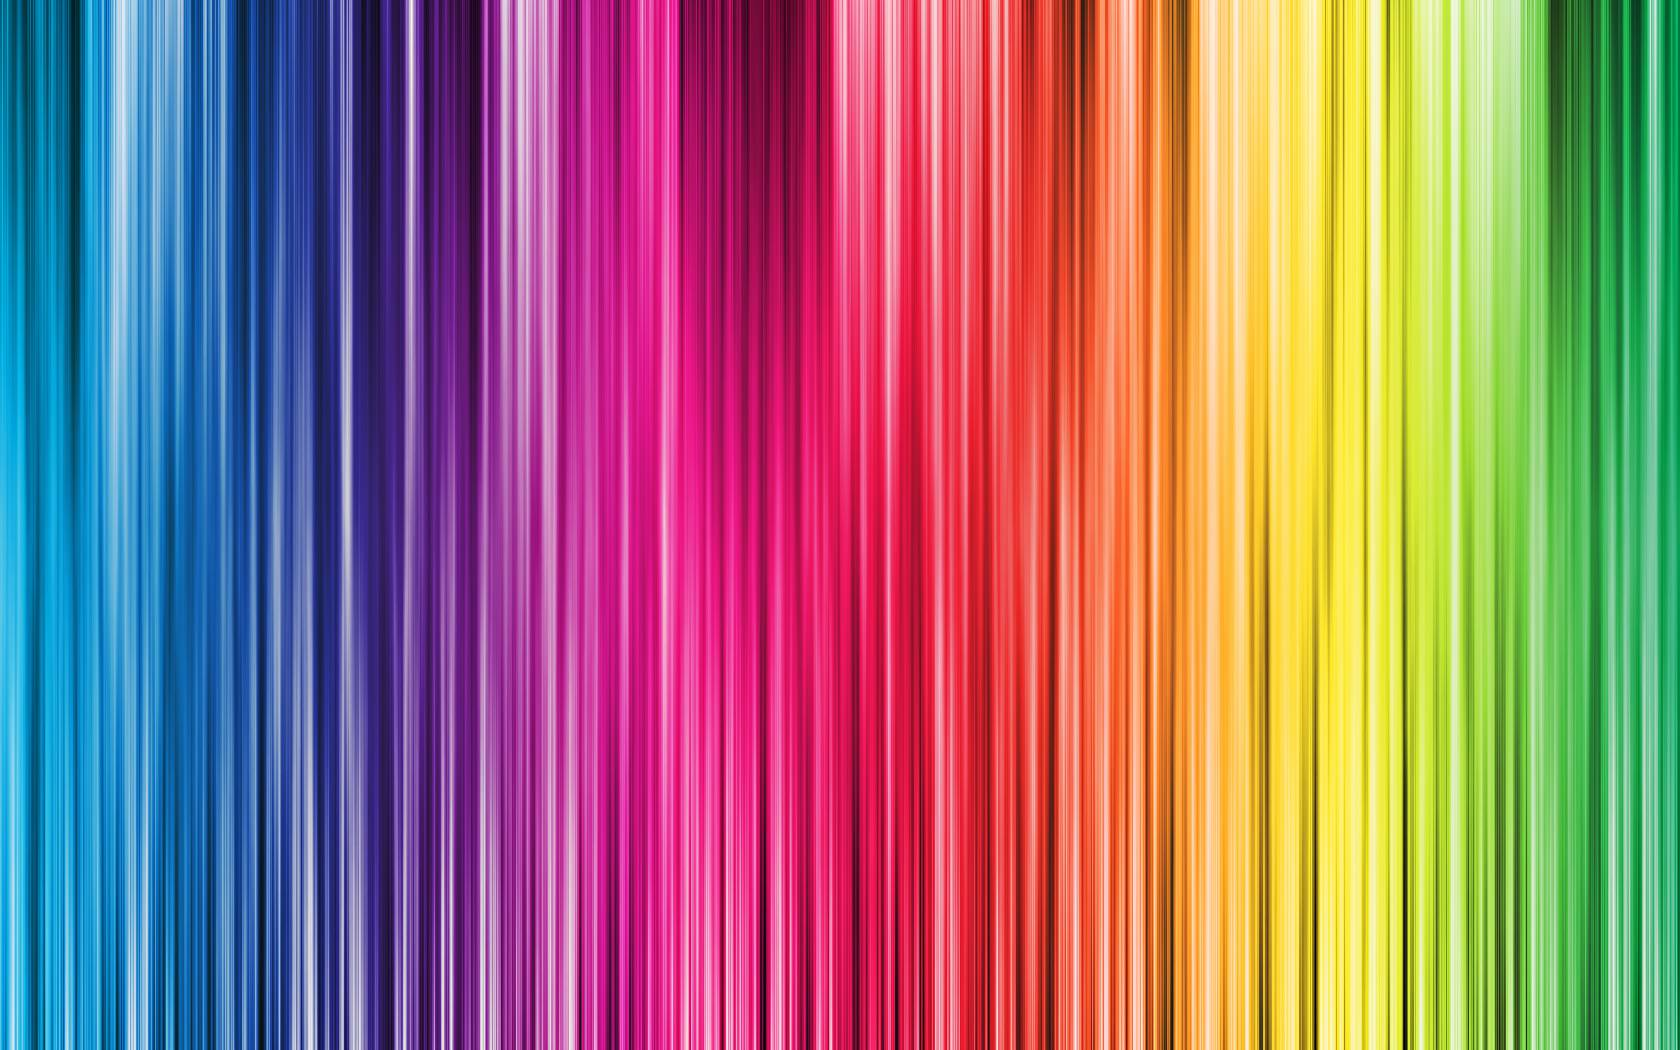 What color is my rainbow